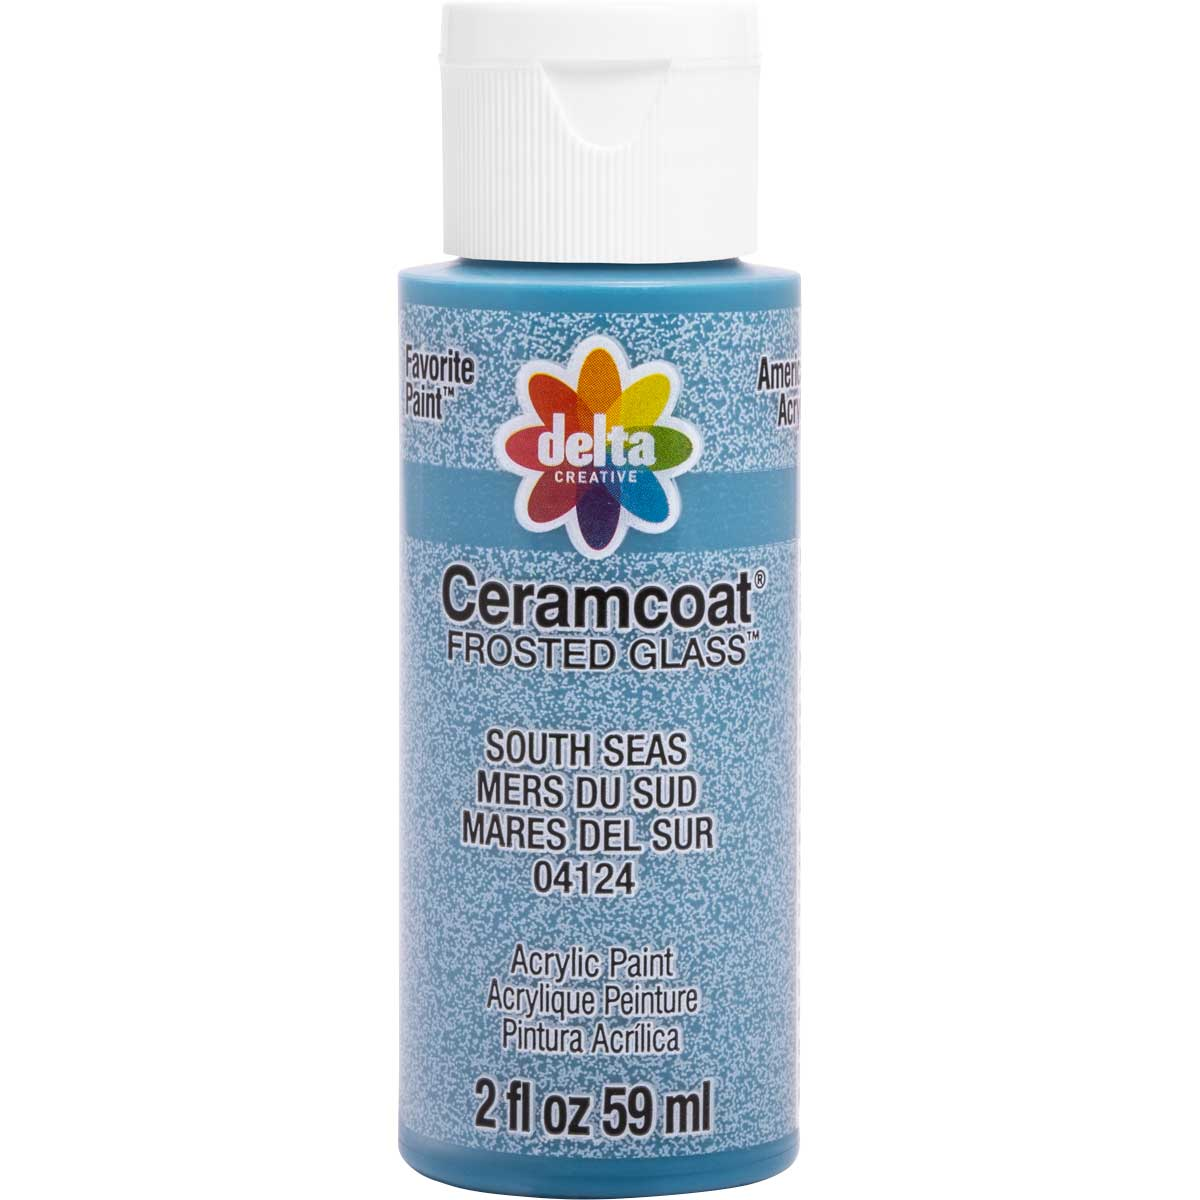 Delta Ceramcoat ® Frosted Glass Paint - South Seas, 2 oz. - 04124